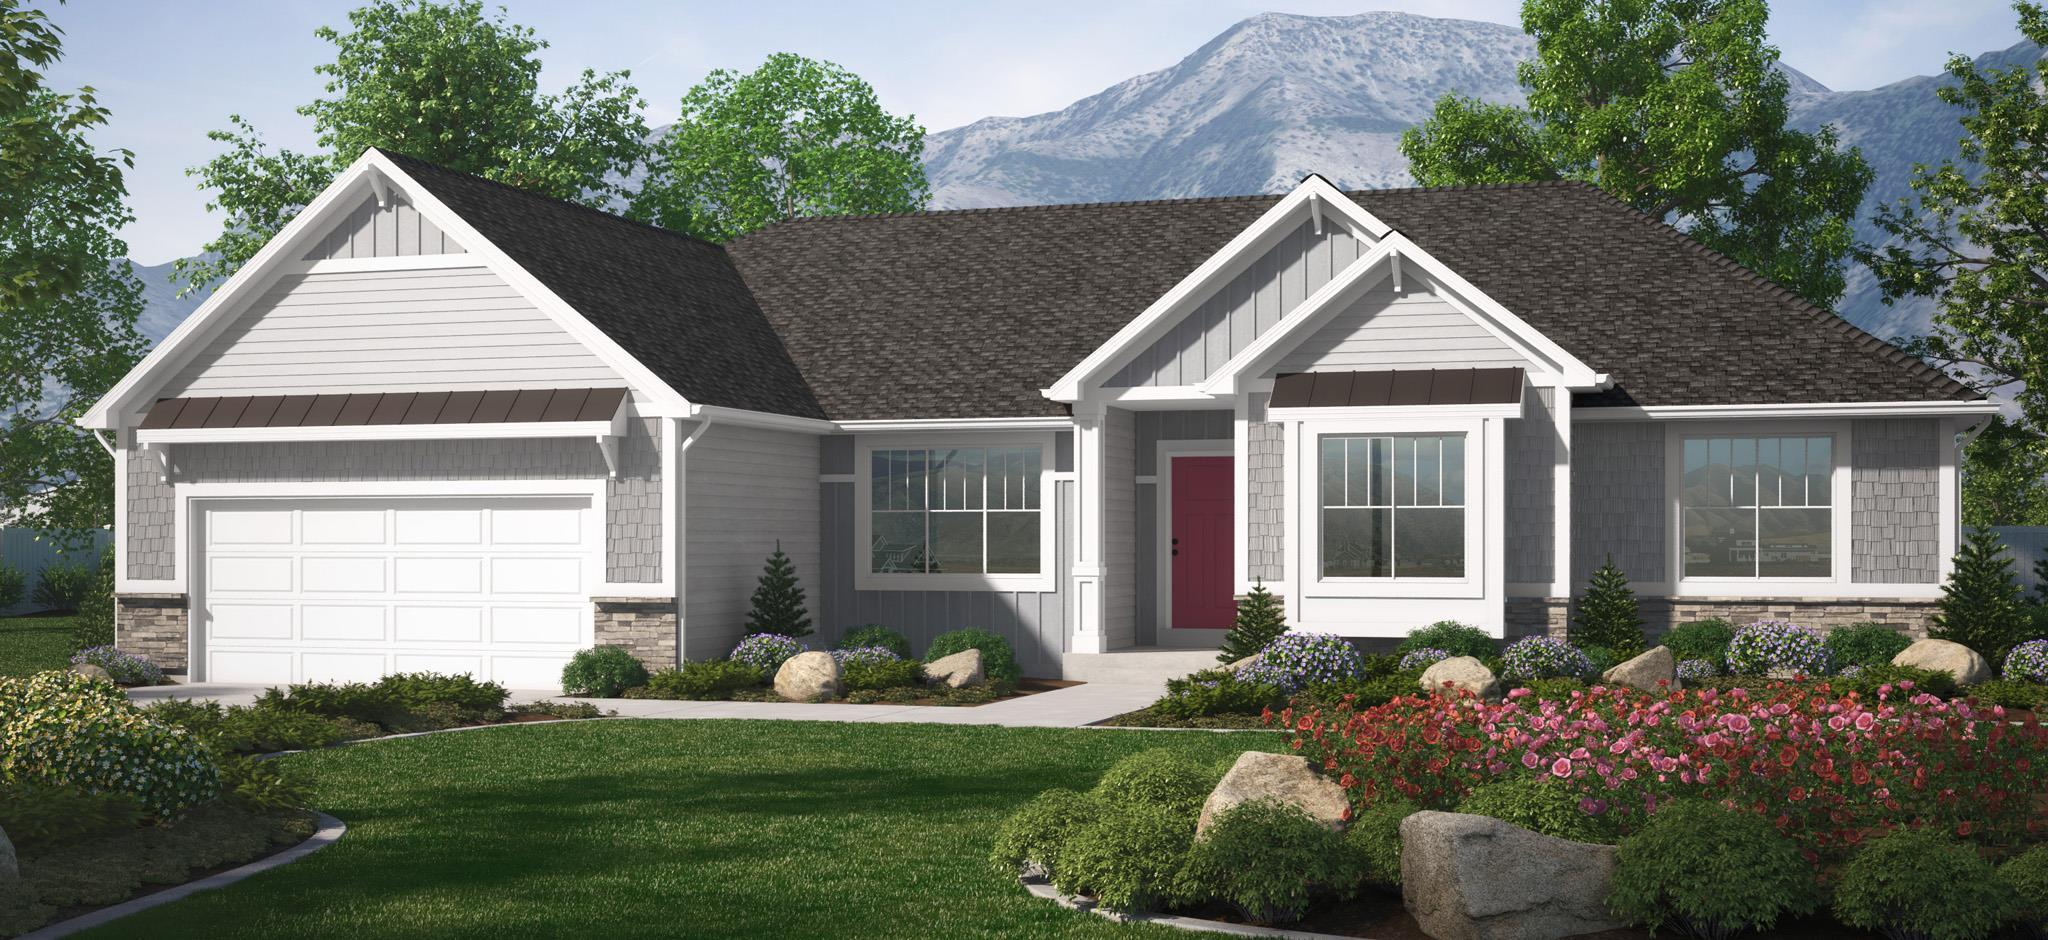 Exterior featured in the Cambridge (SOG) By Visionary Homes in Logan, UT